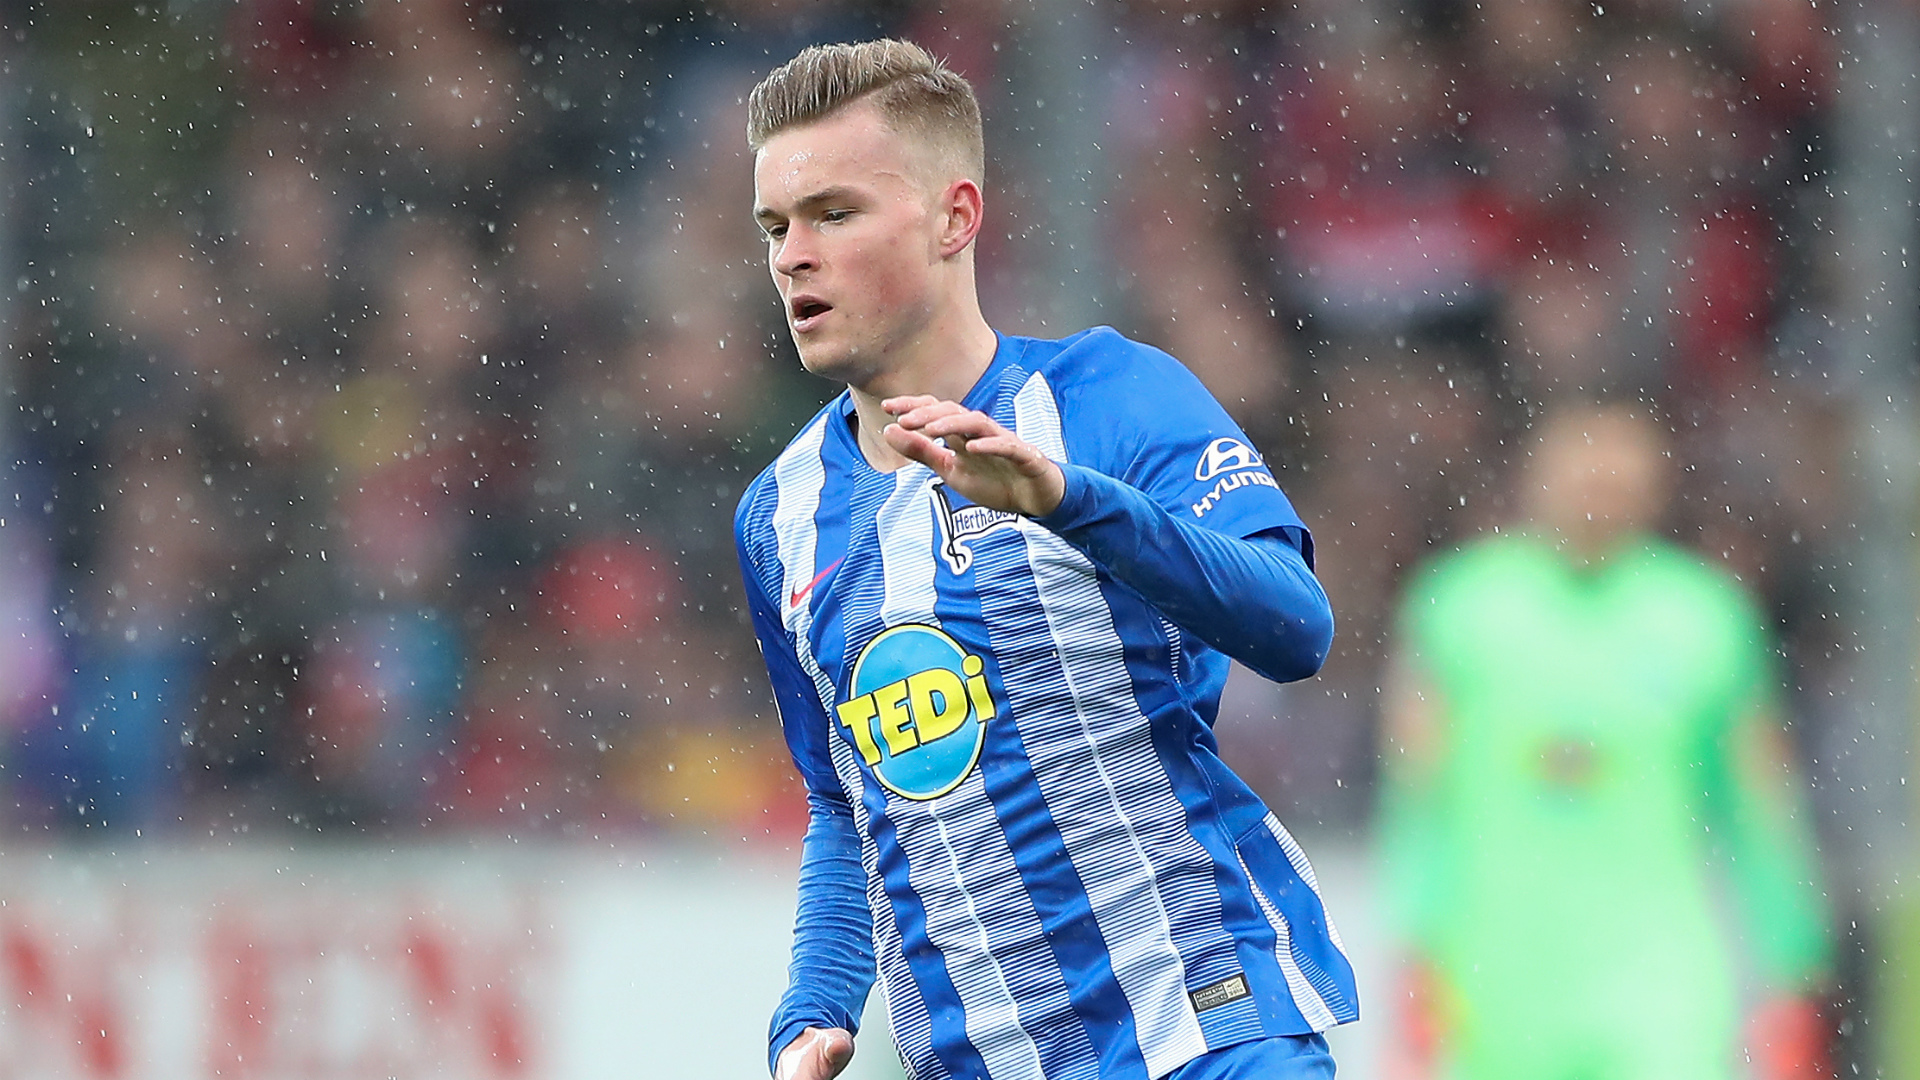 Maximilian Mittelstadt Hertha Berlin March 2019